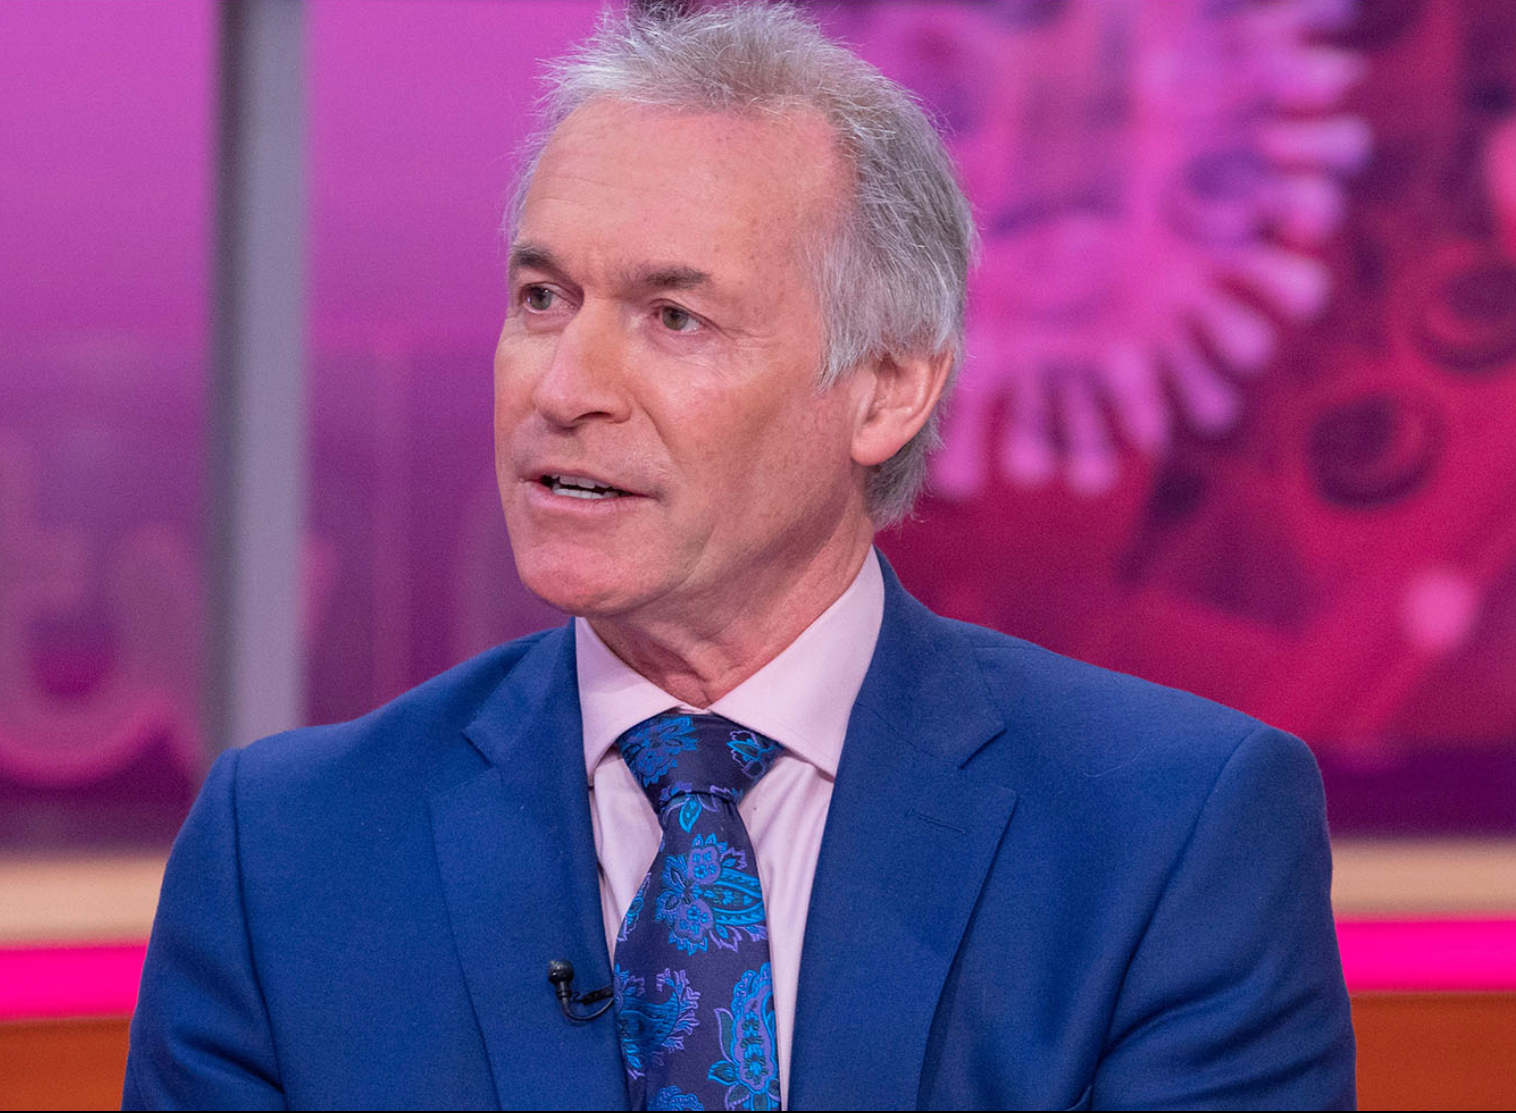 Good Morning Britain fans praise 'sassy' Dr Hilary Jones as he claps back at Piers Morgan and Vanessa Hudgens